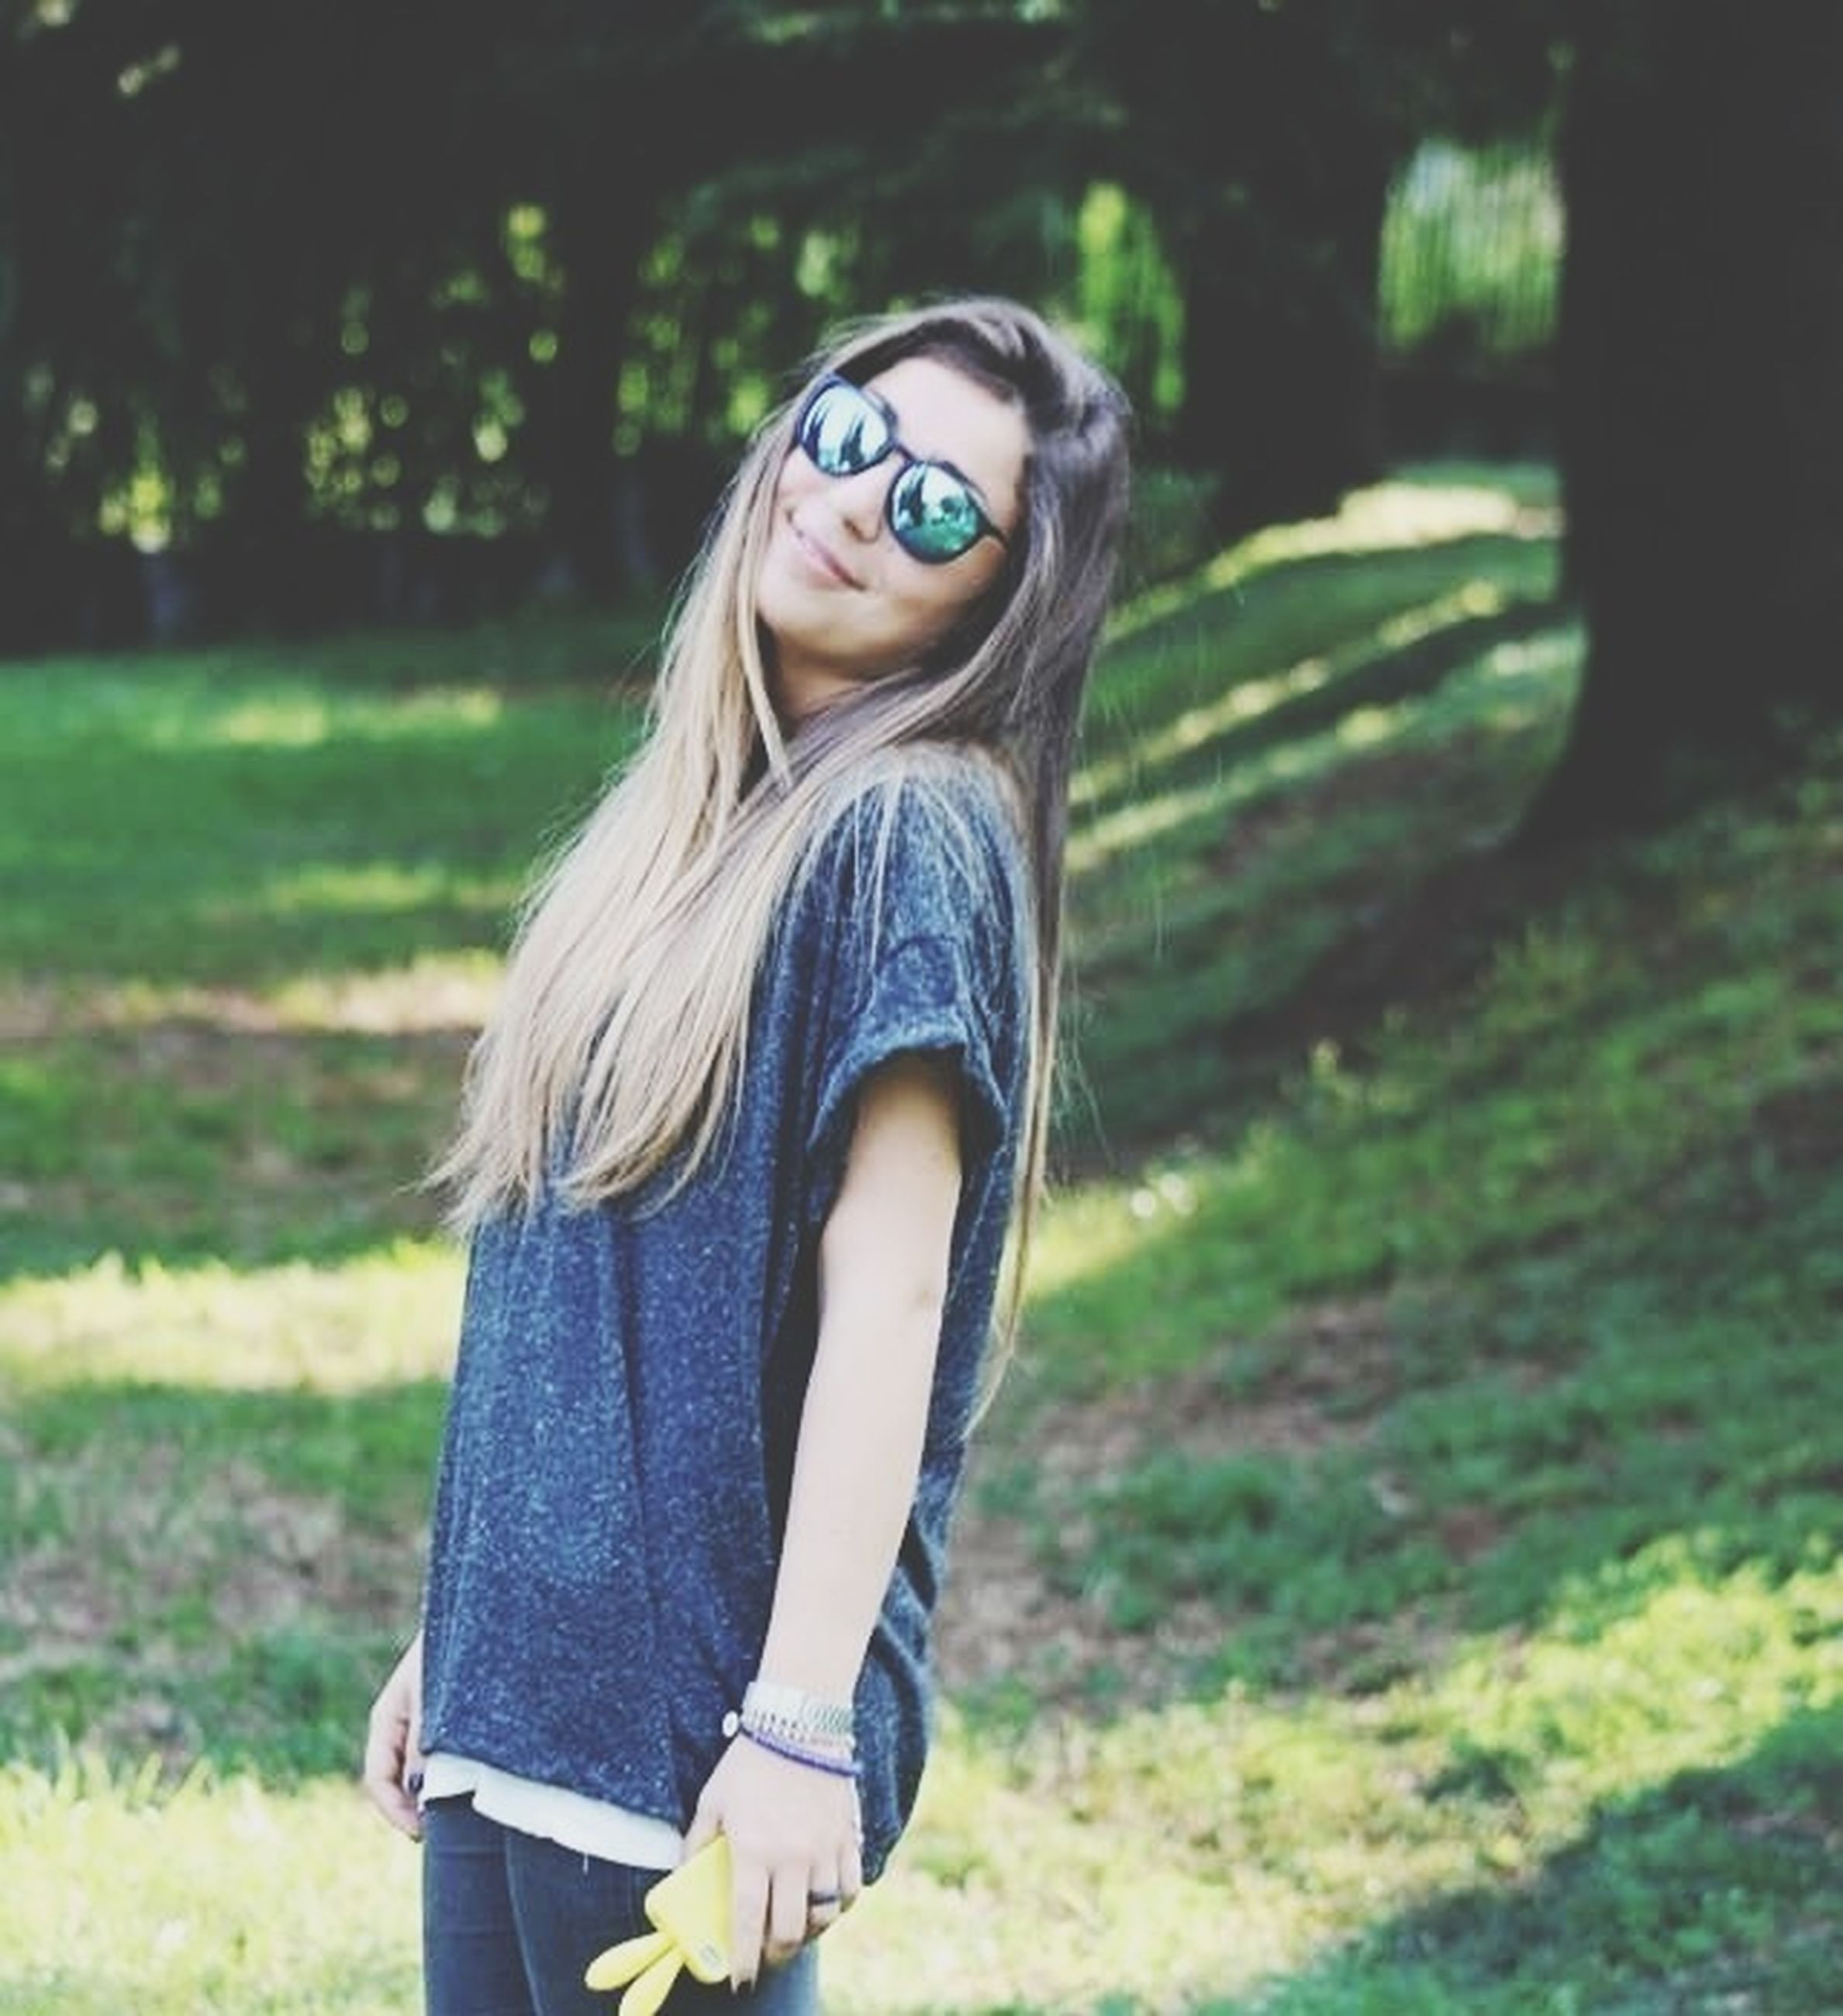 young adult, lifestyles, young women, focus on foreground, casual clothing, person, grass, leisure activity, portrait, looking at camera, long hair, front view, standing, sunglasses, field, smiling, park - man made space